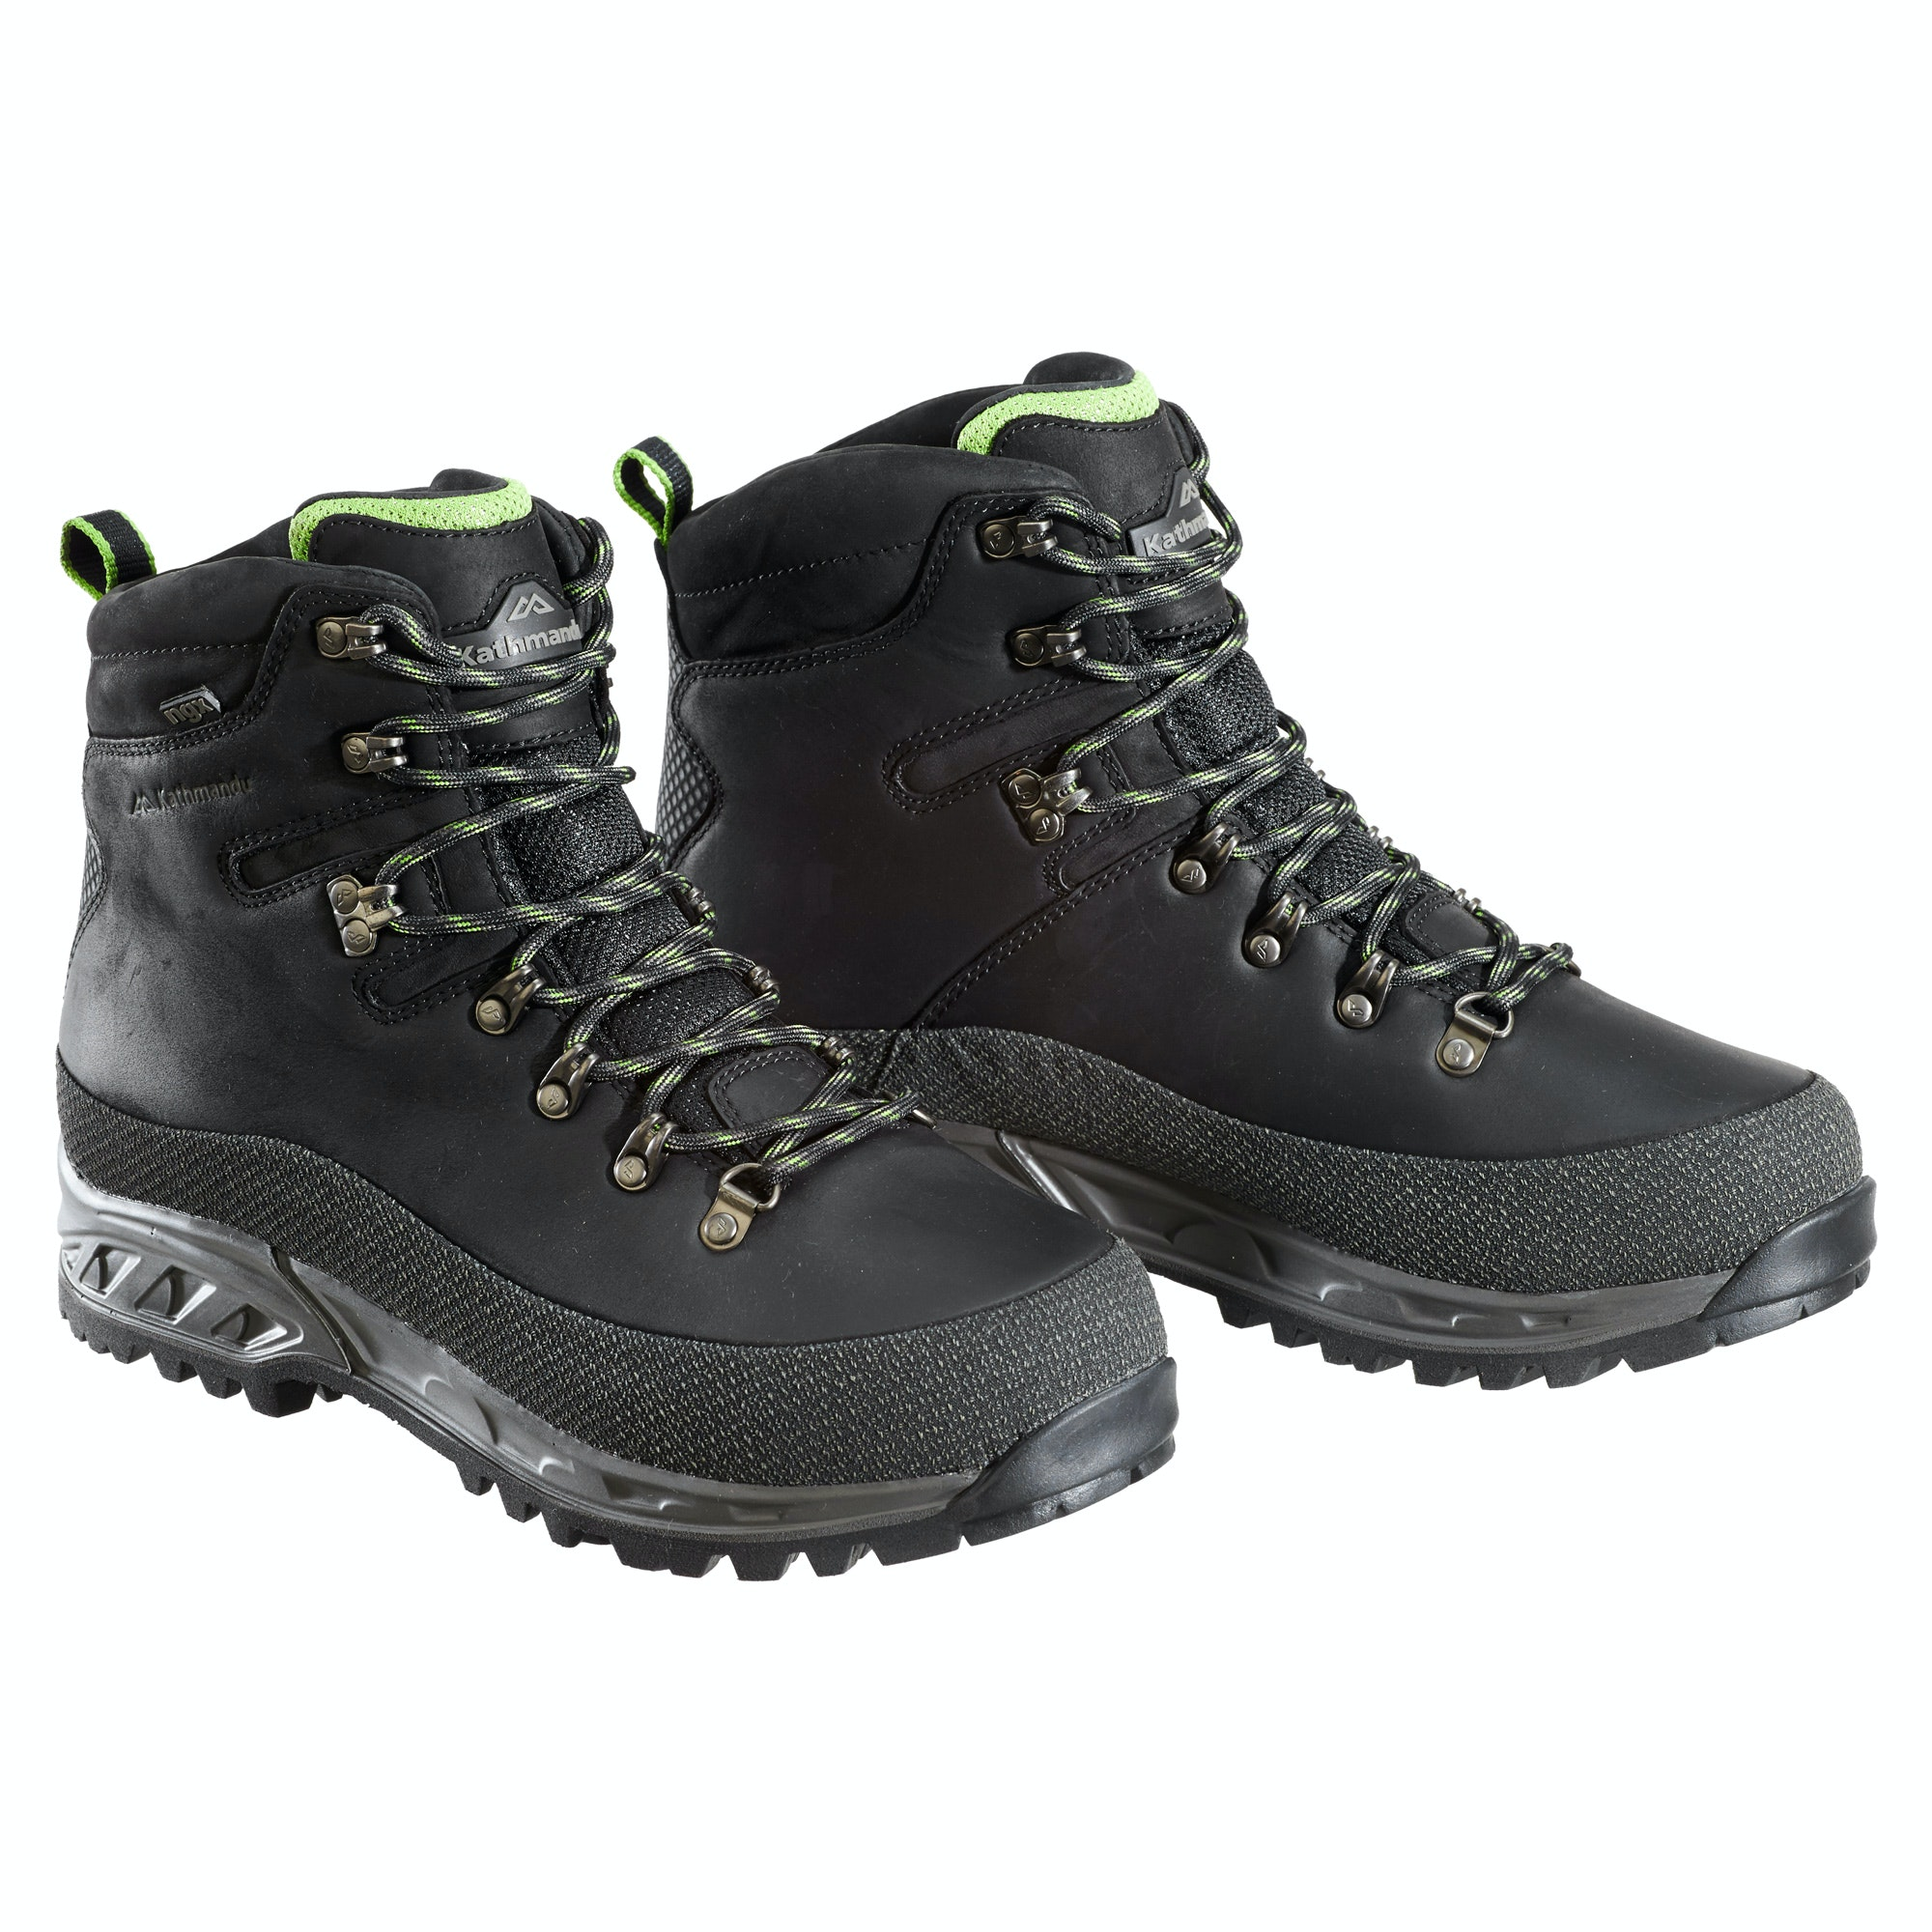 7d93140d31de7 Fyfe NGX Men s Kevlar Hiking Boots - Black